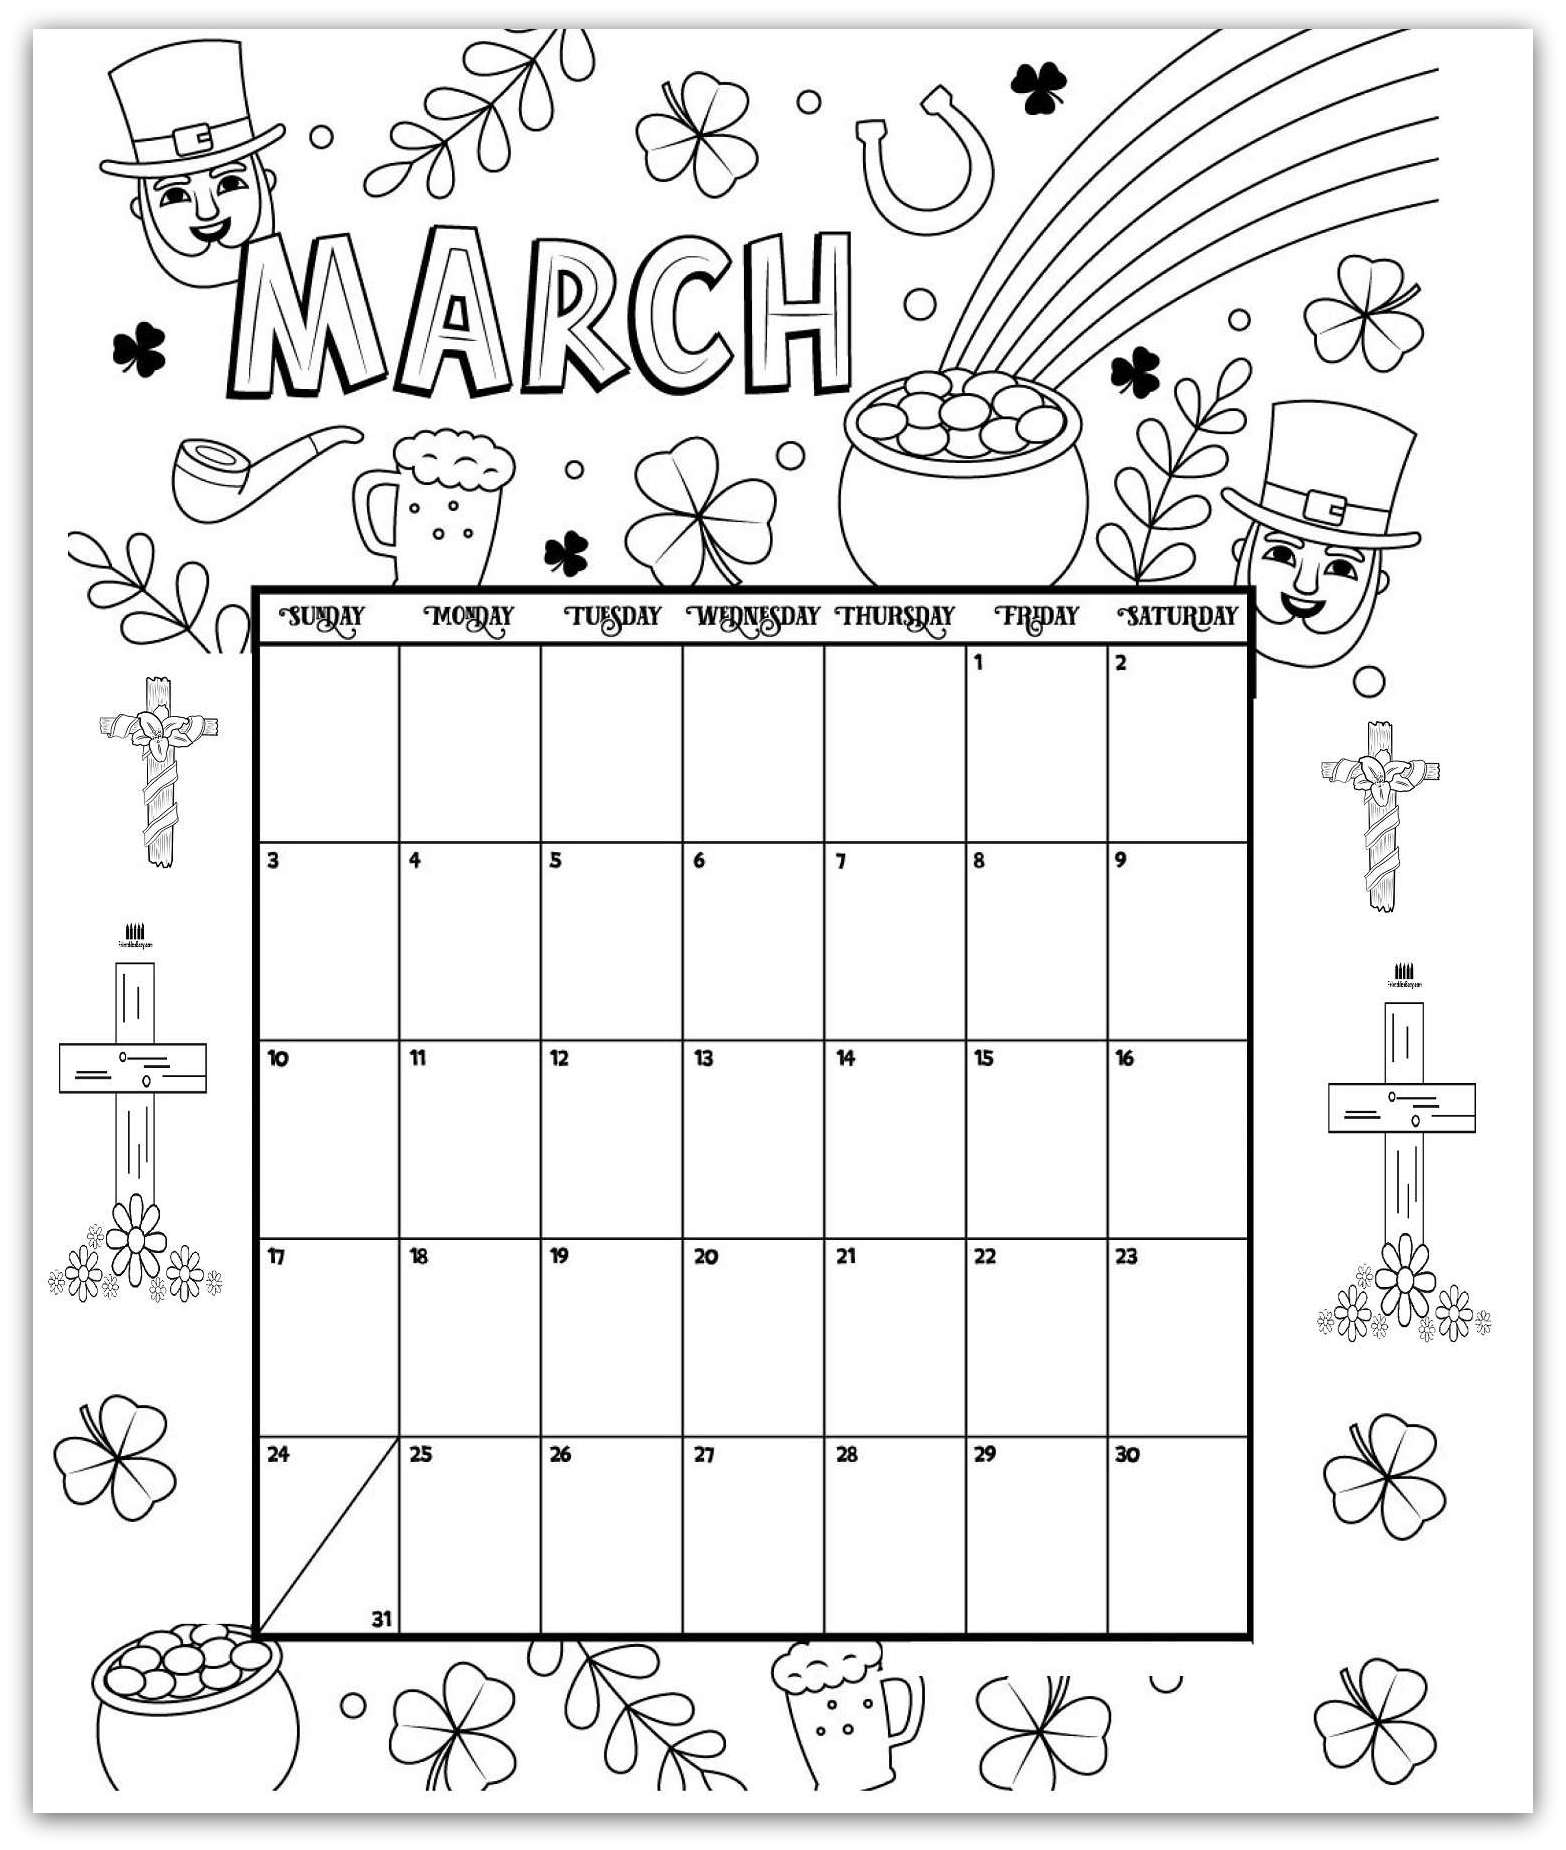 March 2019 Coloring Page Printable Calendar